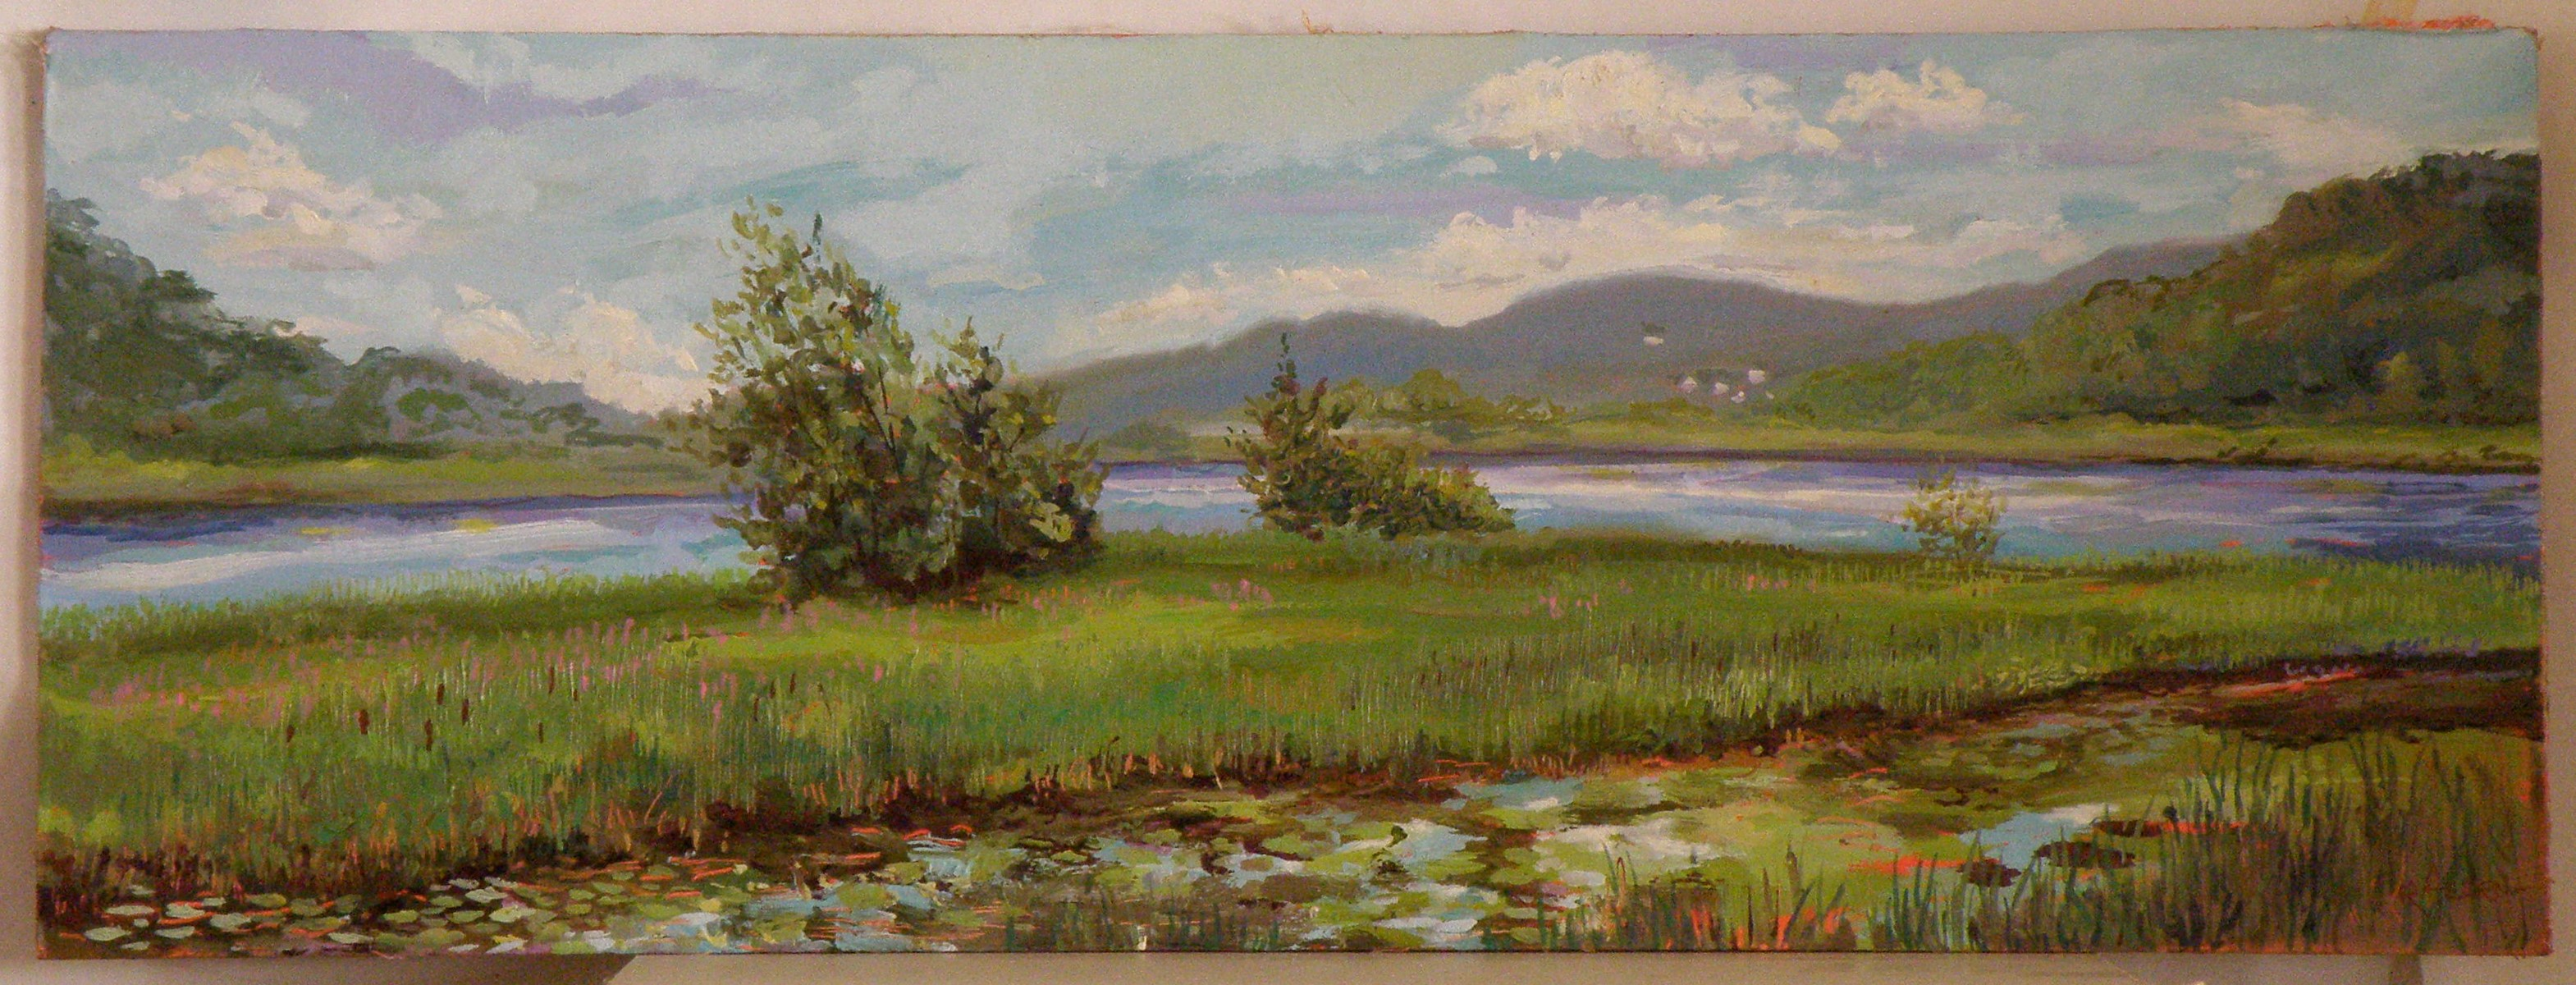 Looking south from Herrick's Cove, Rockingham, Vermont; oil on panel